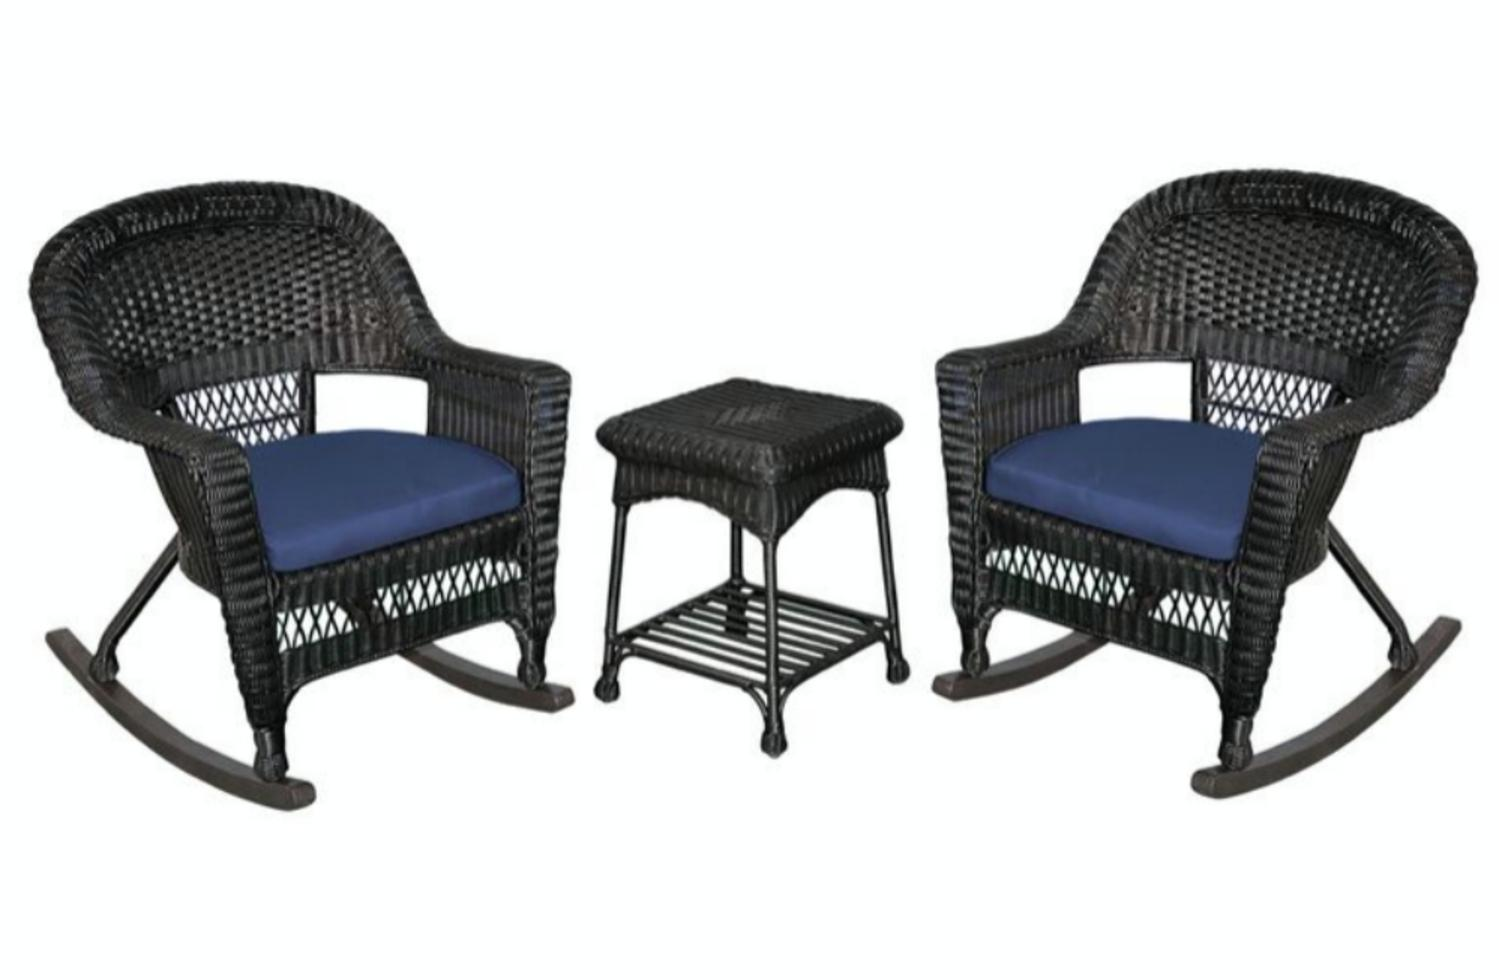 Best Choice Products Outdoor Garden Patio 4pc Cushioned Seat Black Wicker  Sofa Furniture Set   Walmart.com Part 94